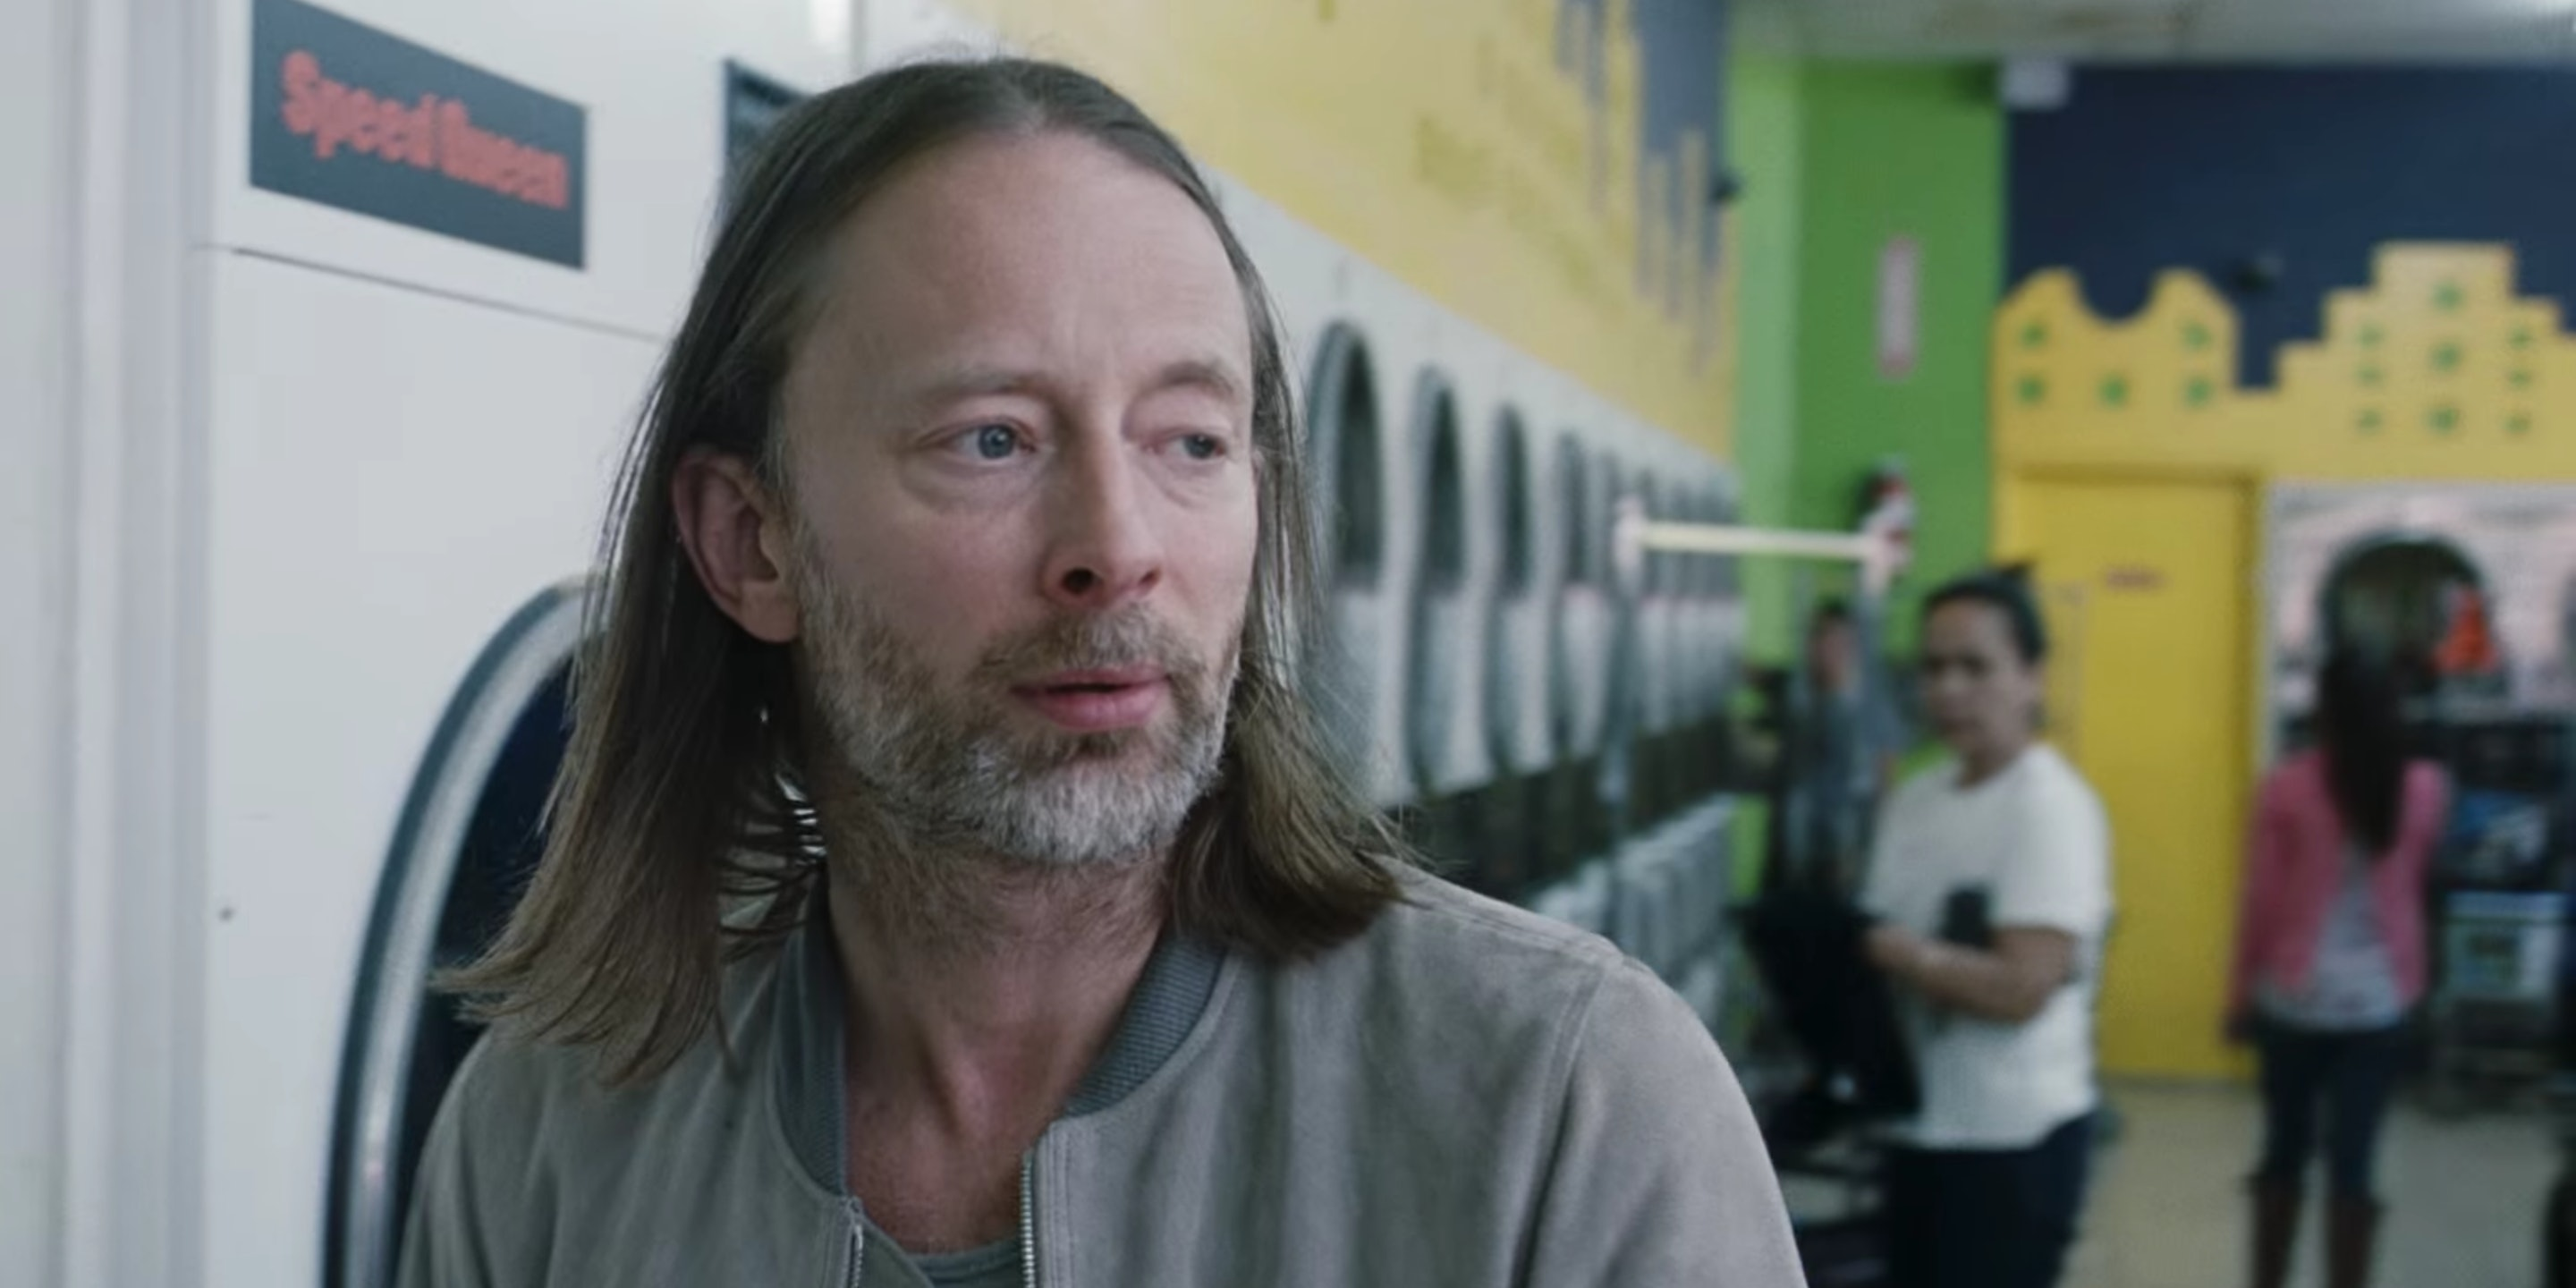 These 3 Science Metrics Can Categorize Radiohead Better Than Spotify's Genres